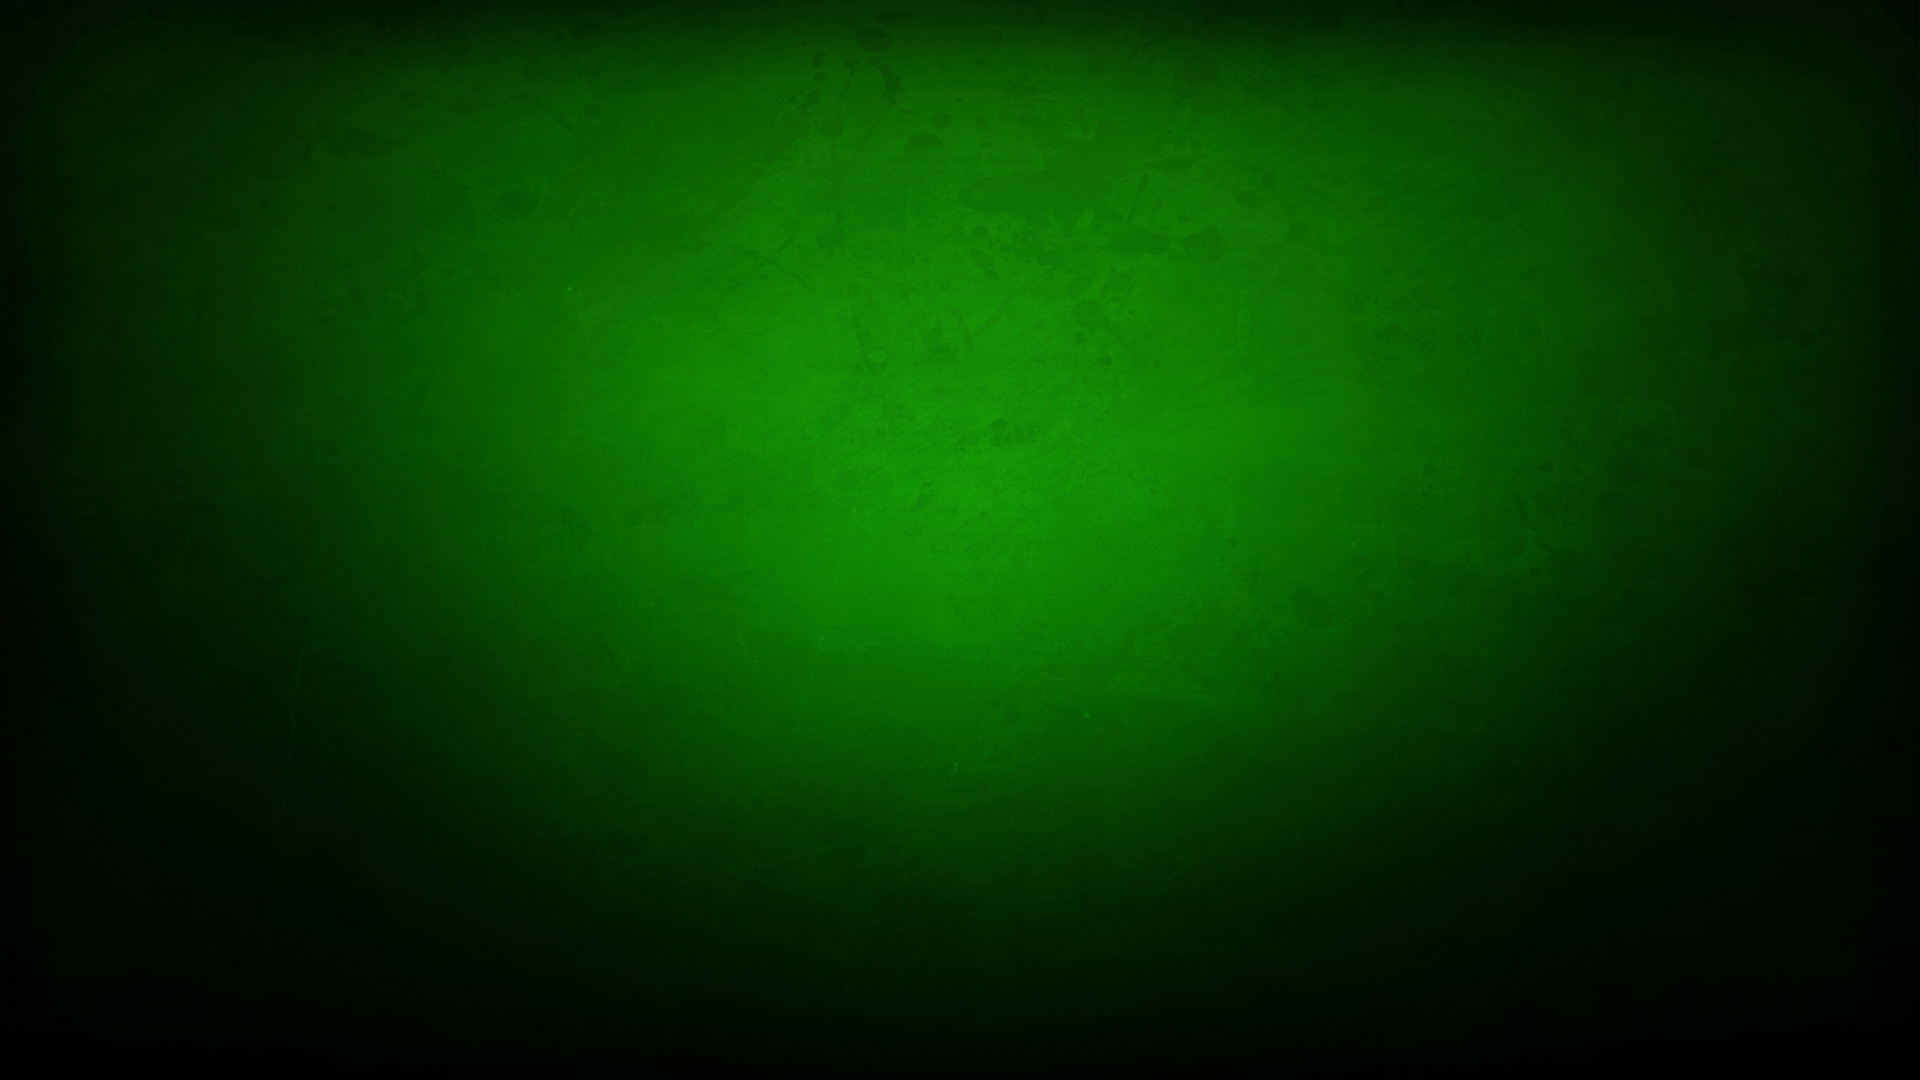 1920x1080 grunge green desktop pc and mac wallpaper